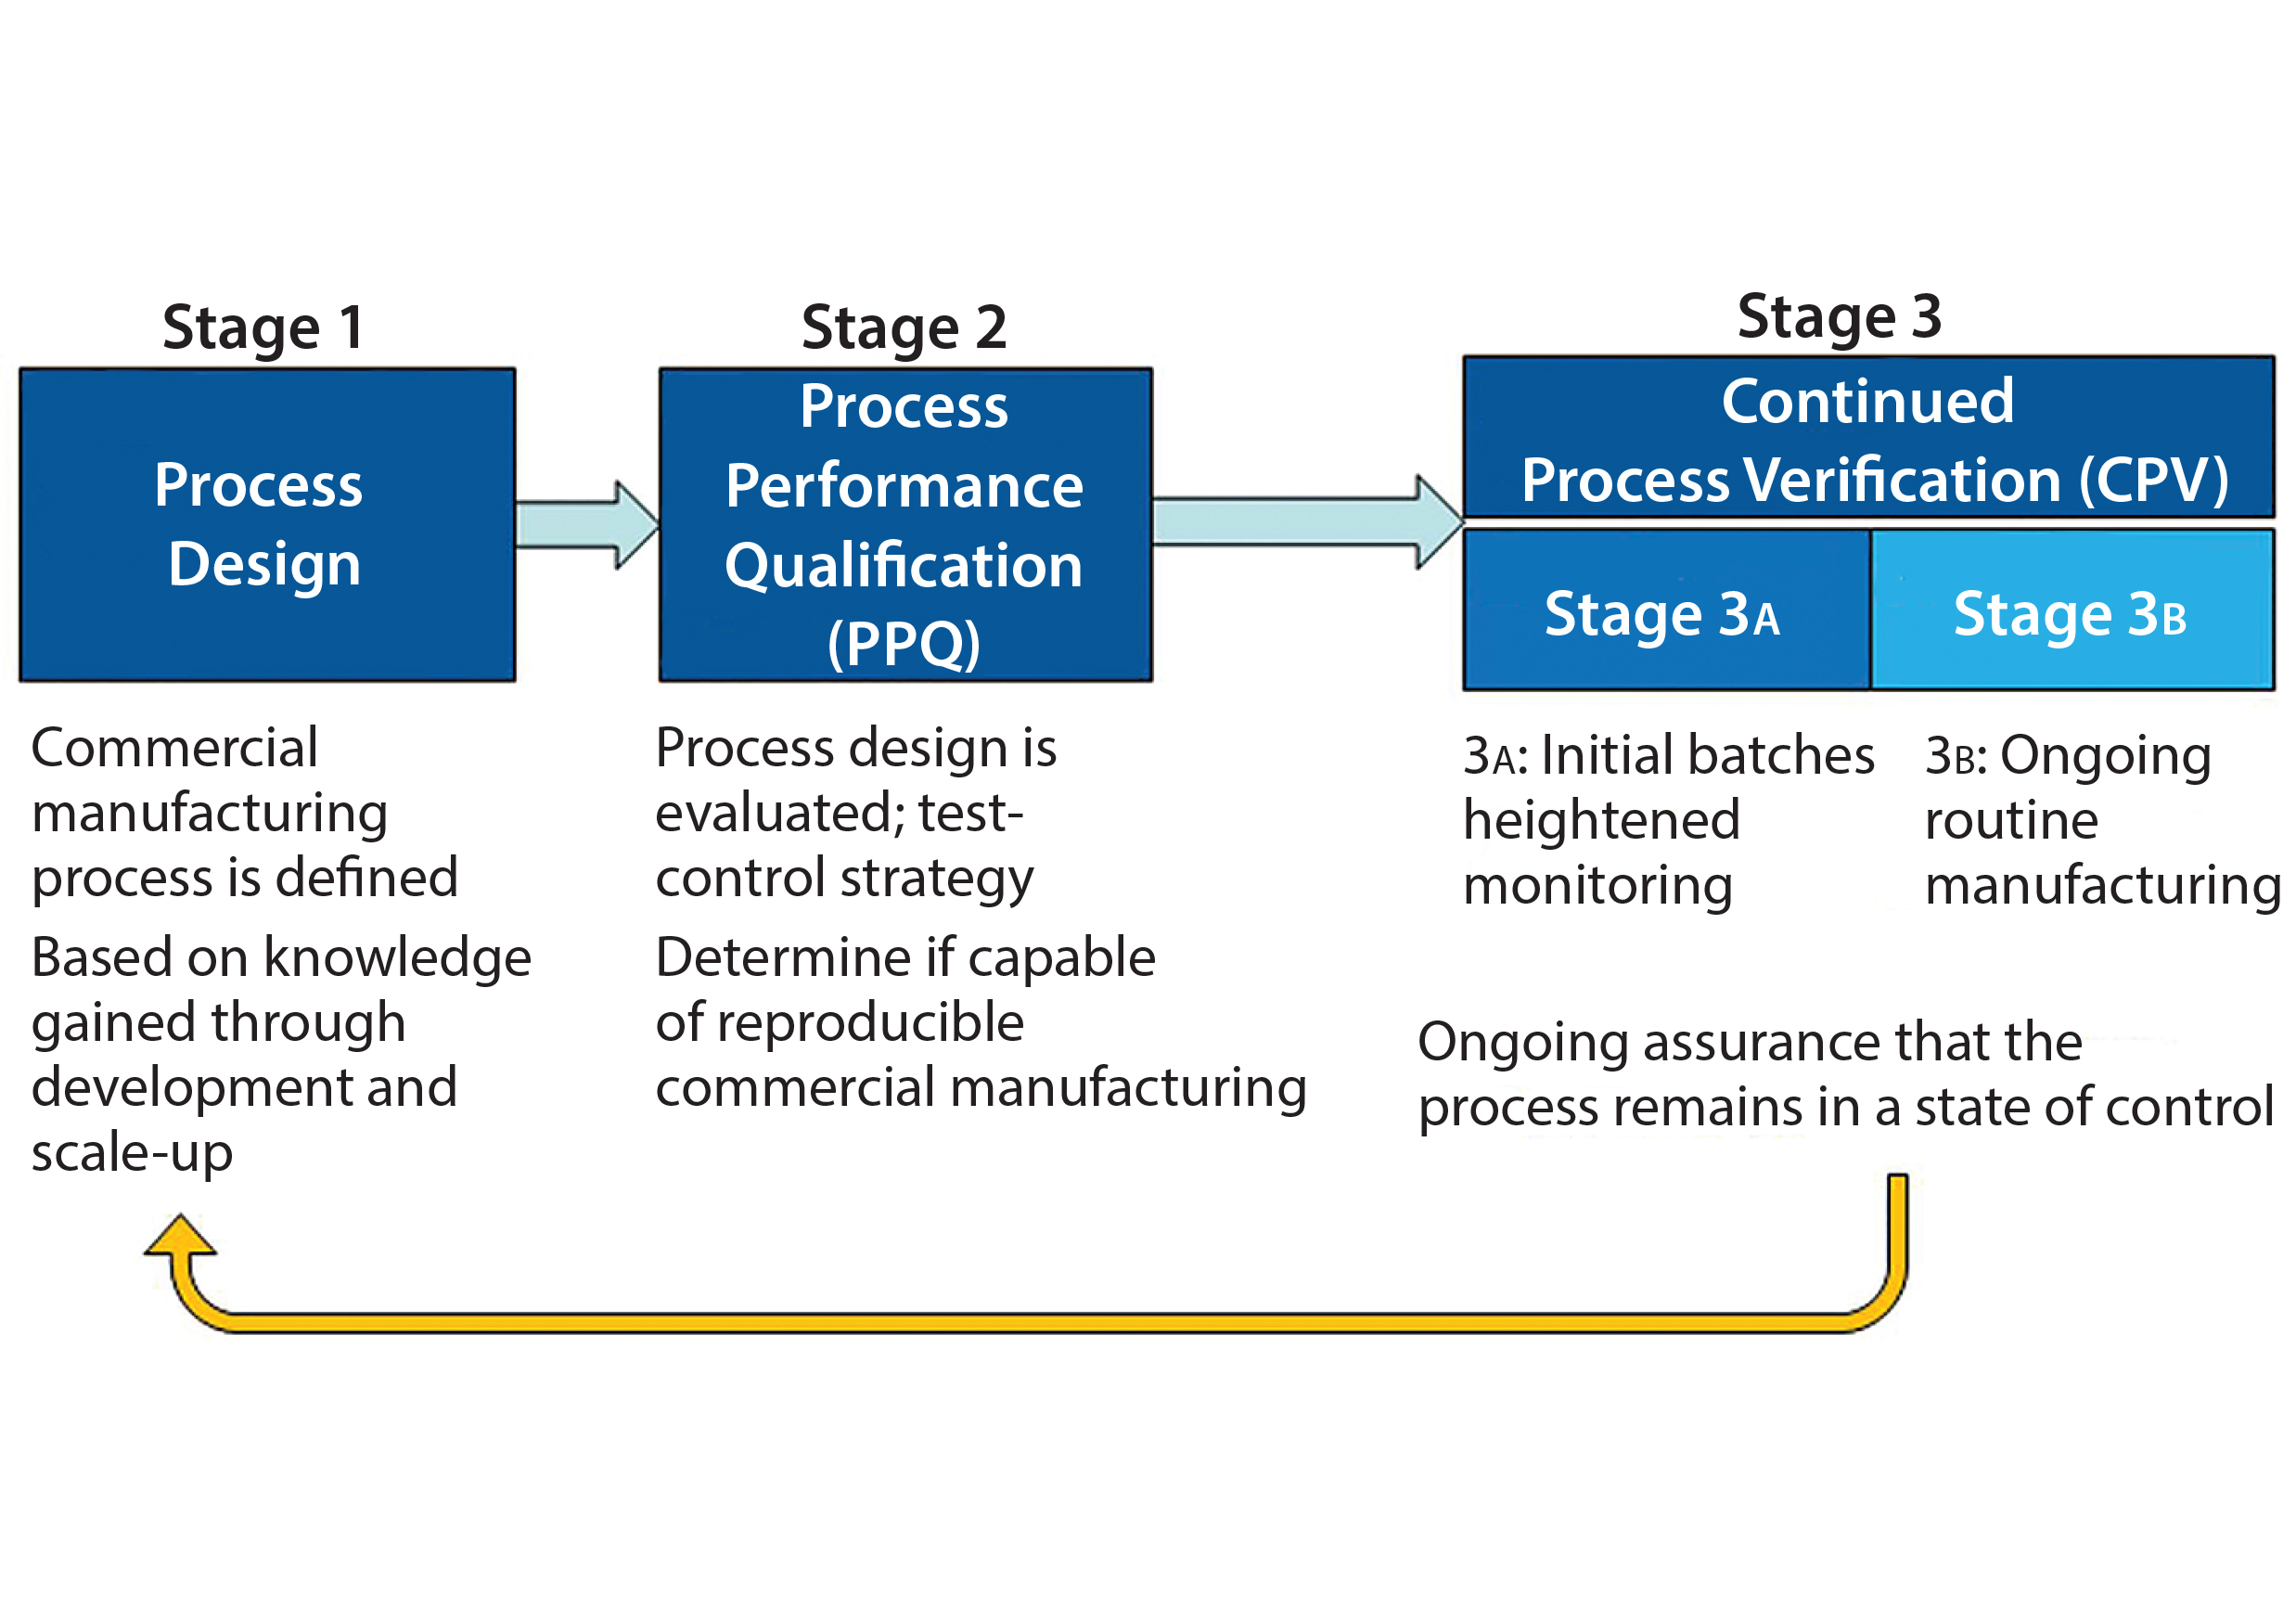 Continued Process Verification Evolution Of